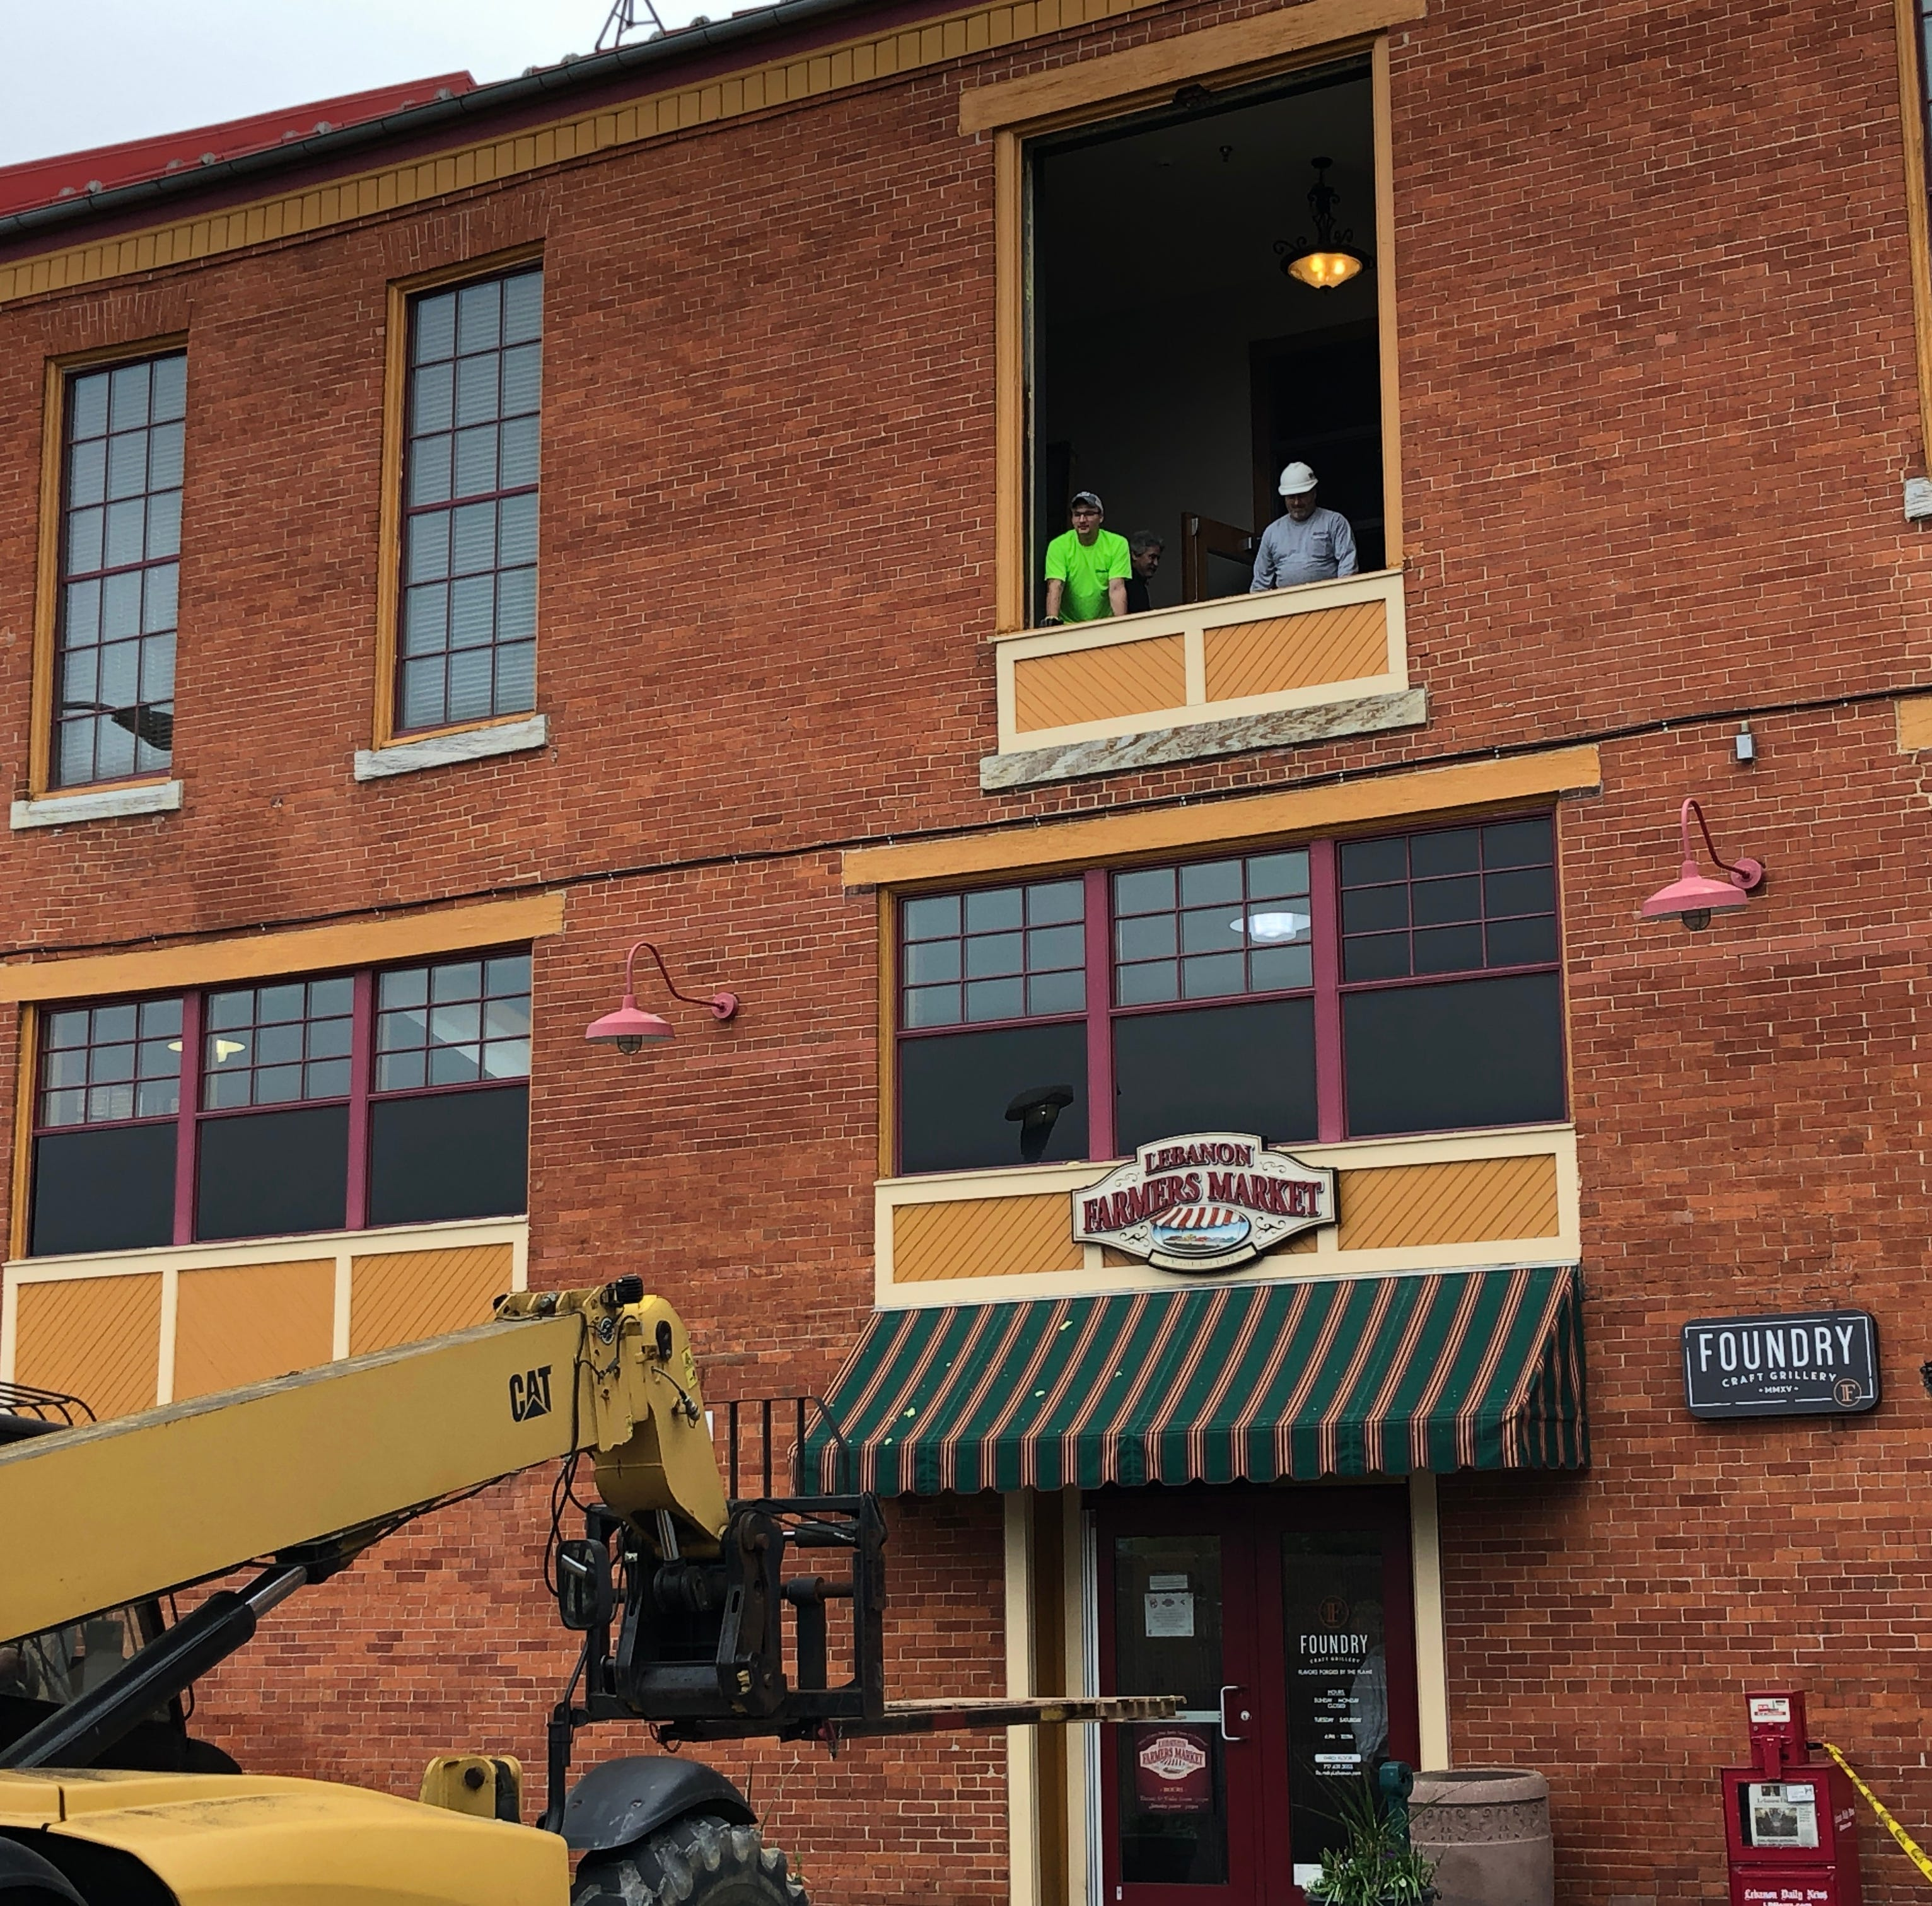 Check out Herculean effort needed to remove 2,000-pound grill at Lebanon Farmers Market